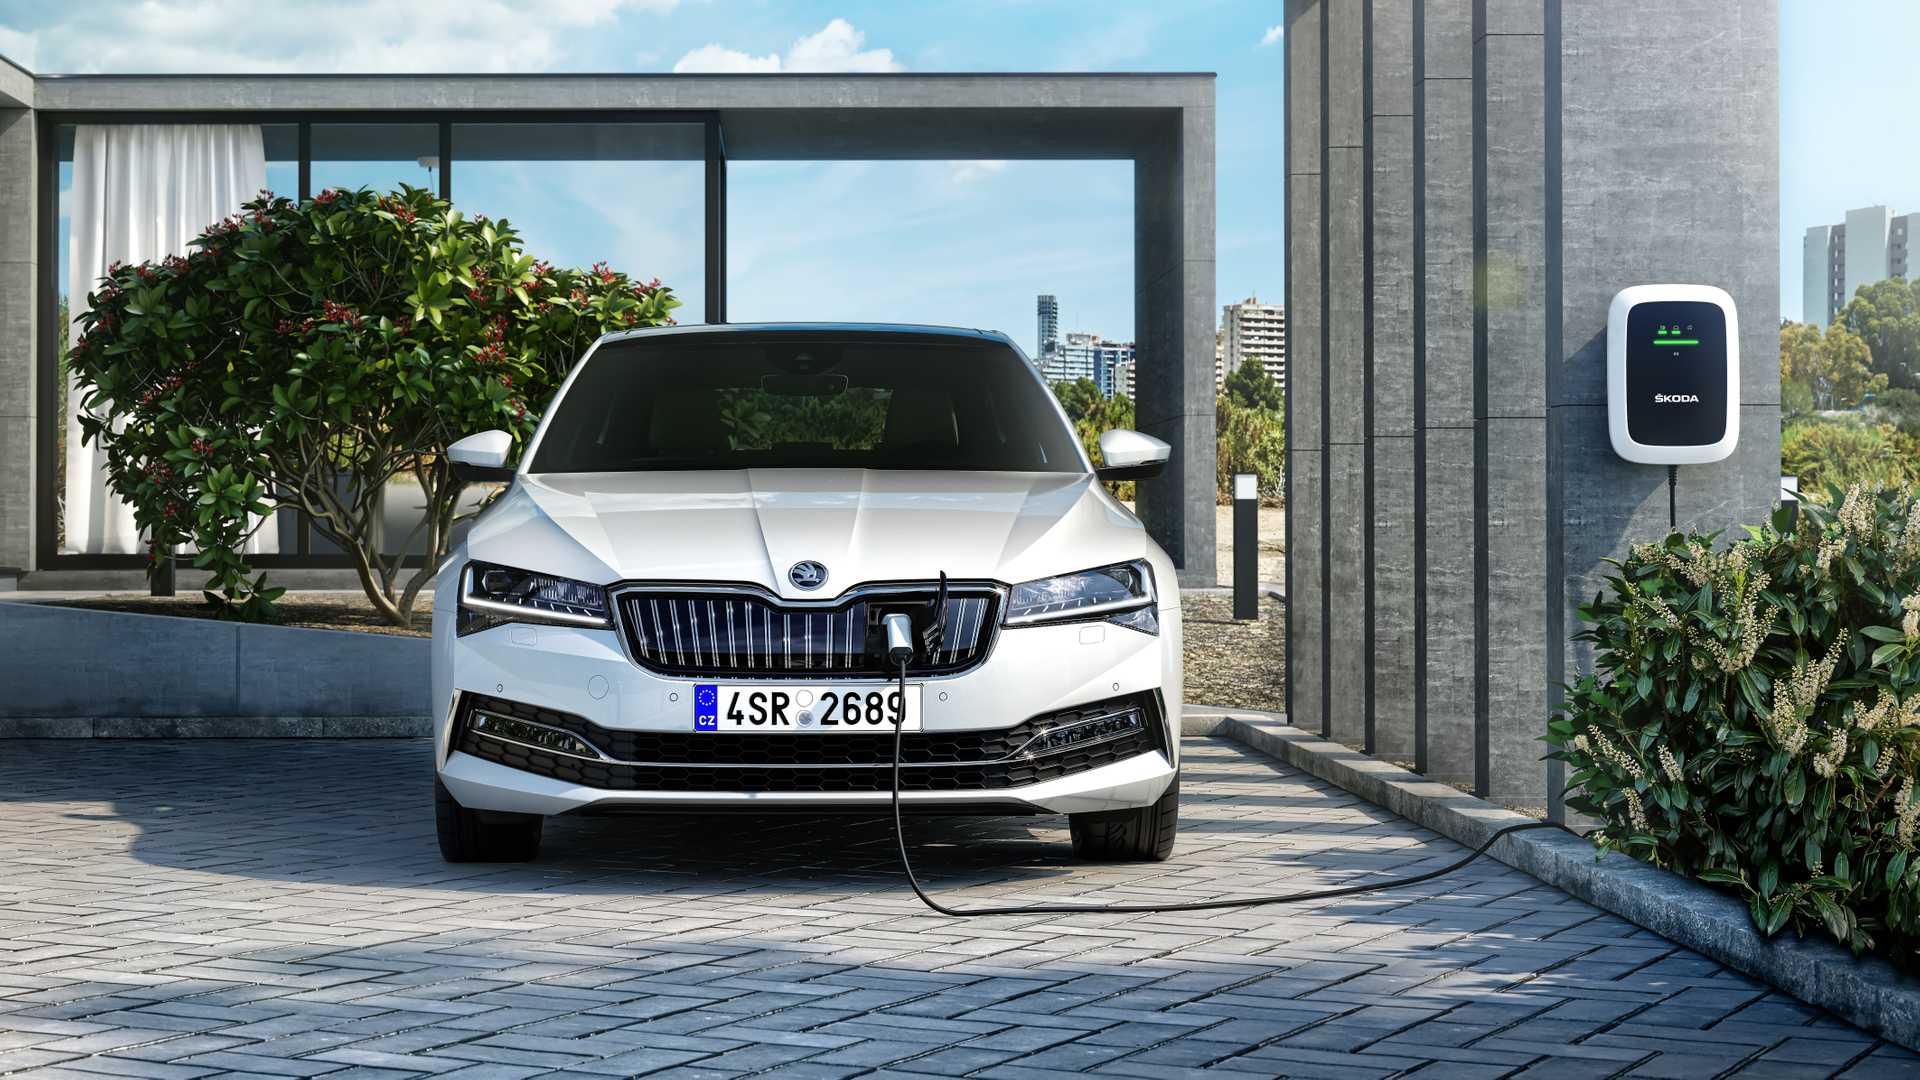 2020-skoda-superb-facelift-3